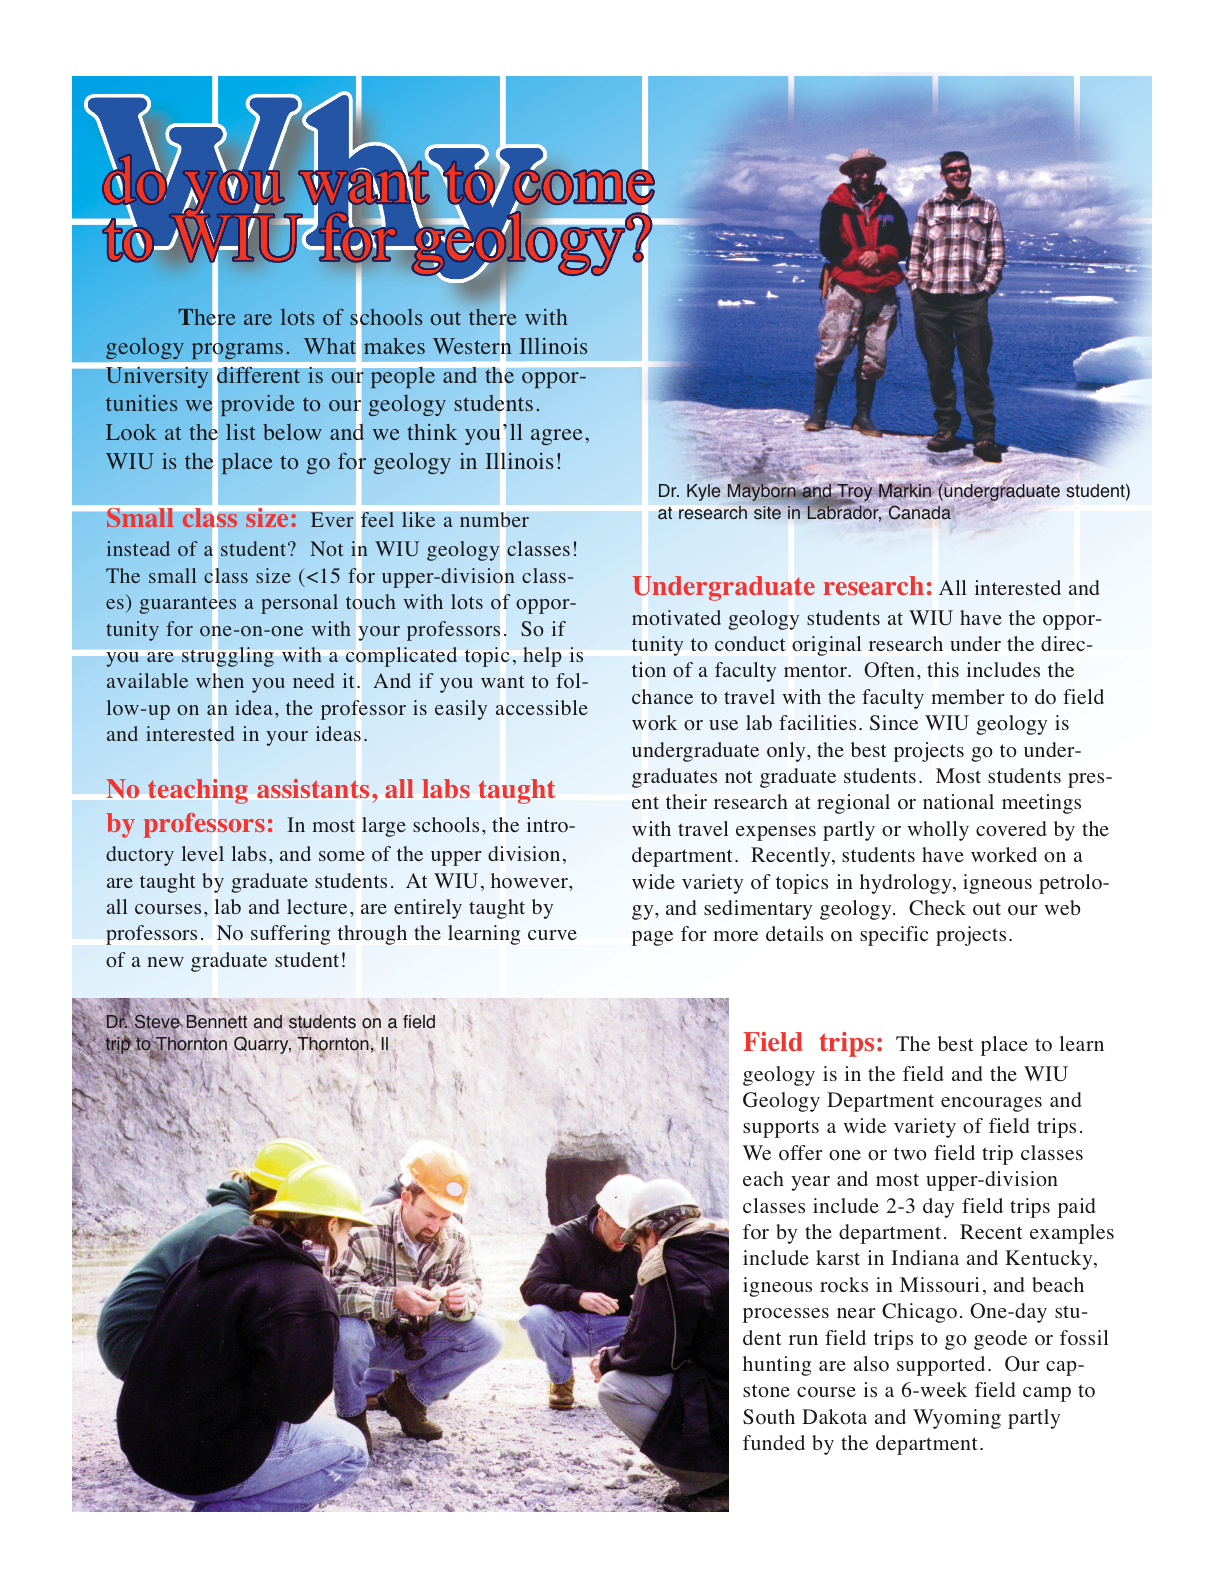 image and text about why to choose WIU for your Geology degree